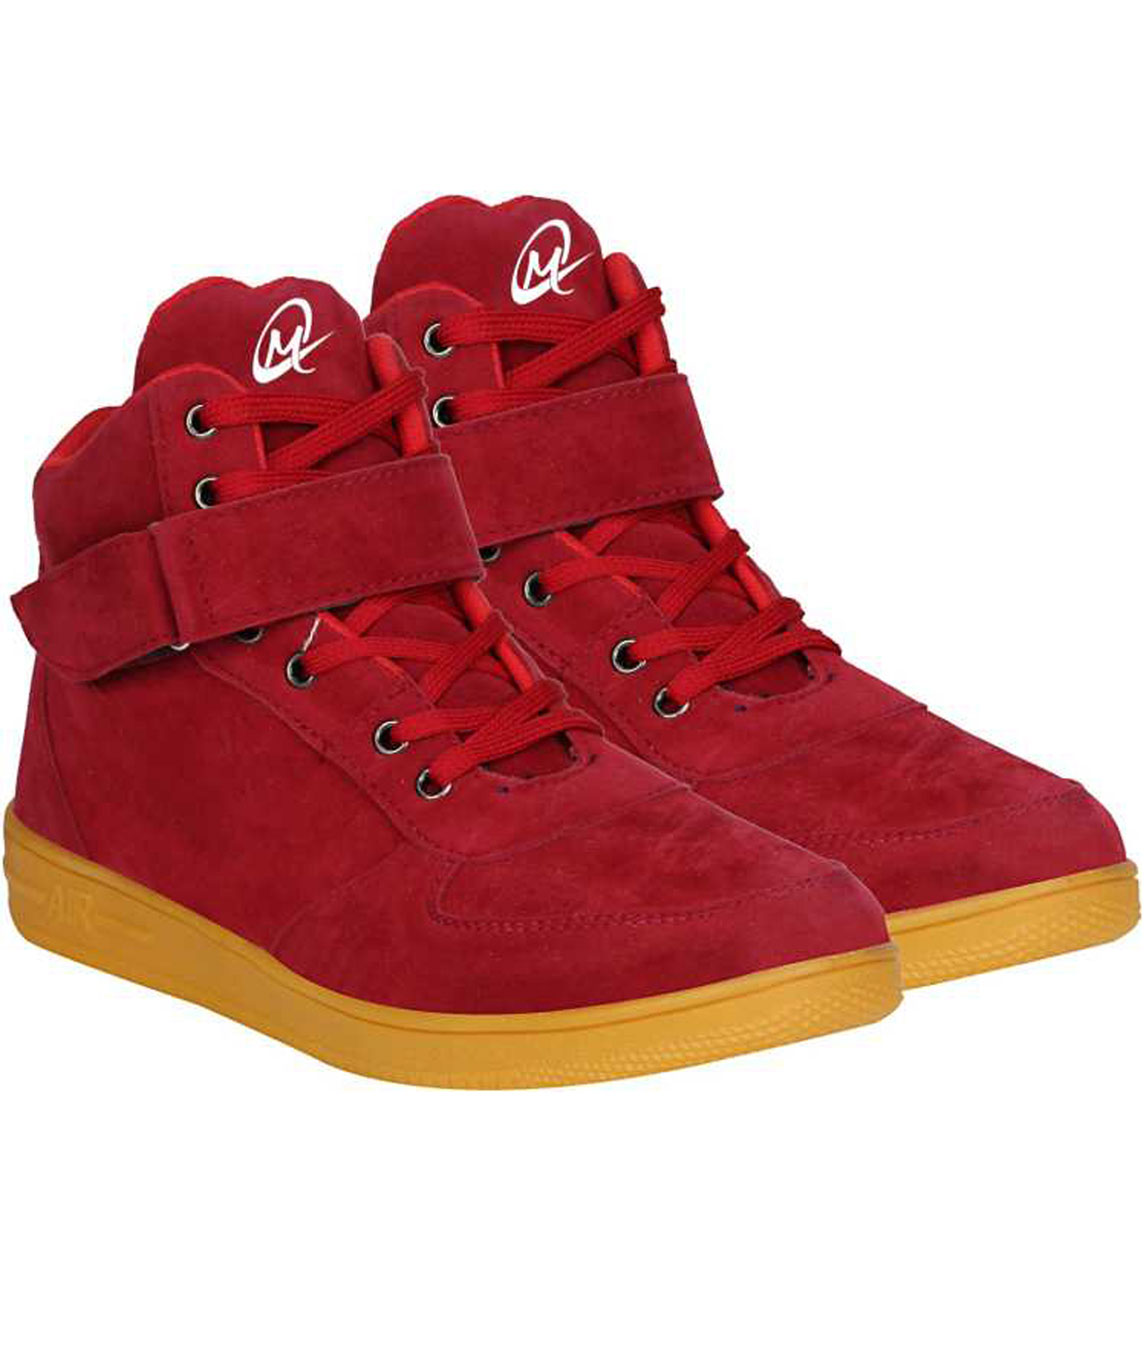 CASUAL LONG SUEDE BOOT SNEAKERS FOR MEN (RED, GOLD)